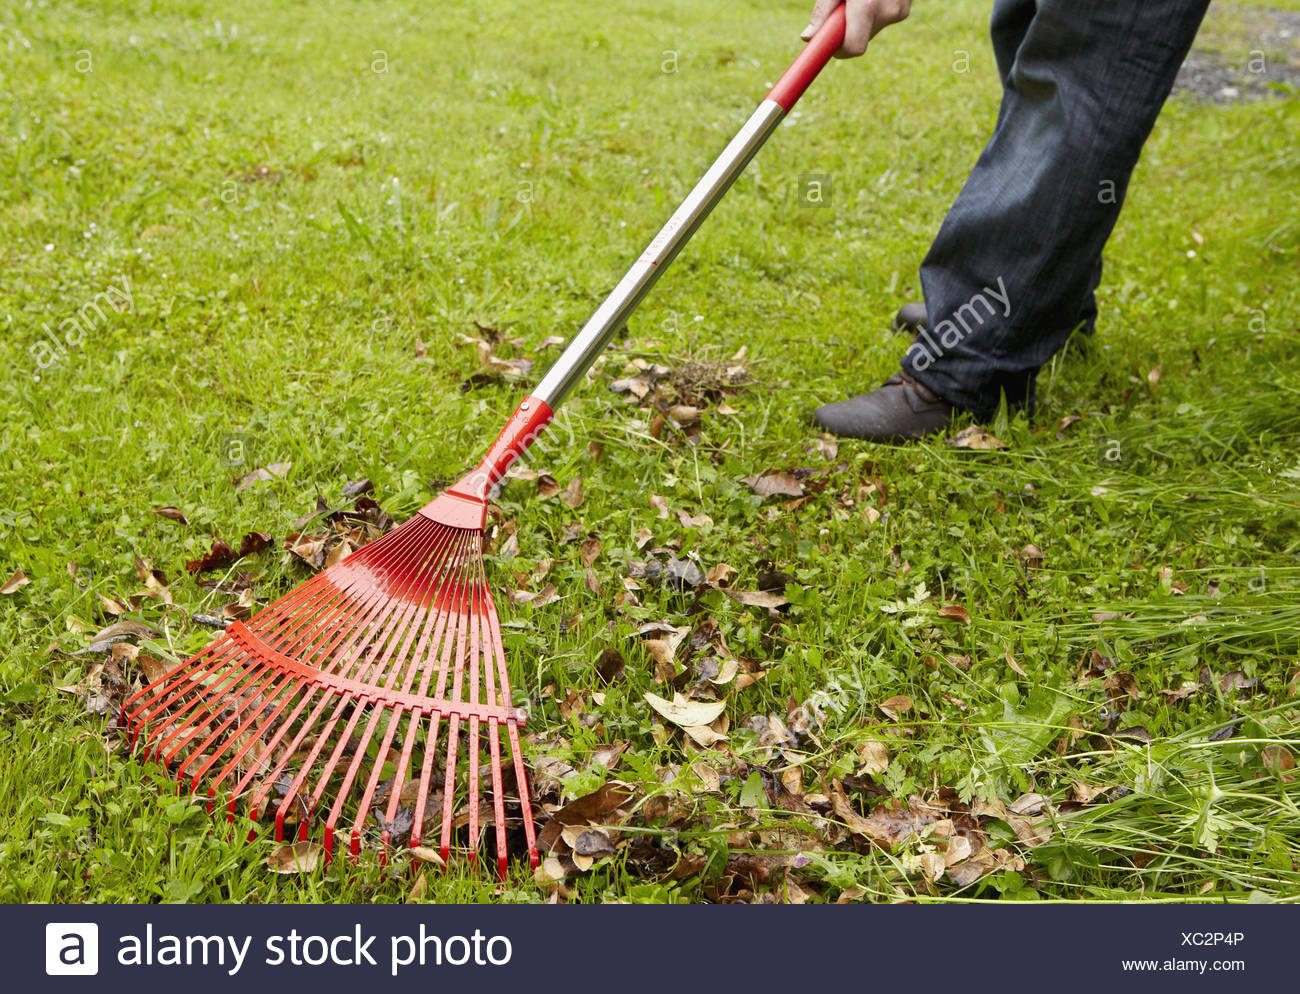 Using sweep rake to pull and collect leaves, garden tool, Guipuzcoa, Basque Country, Spain - Stock Image